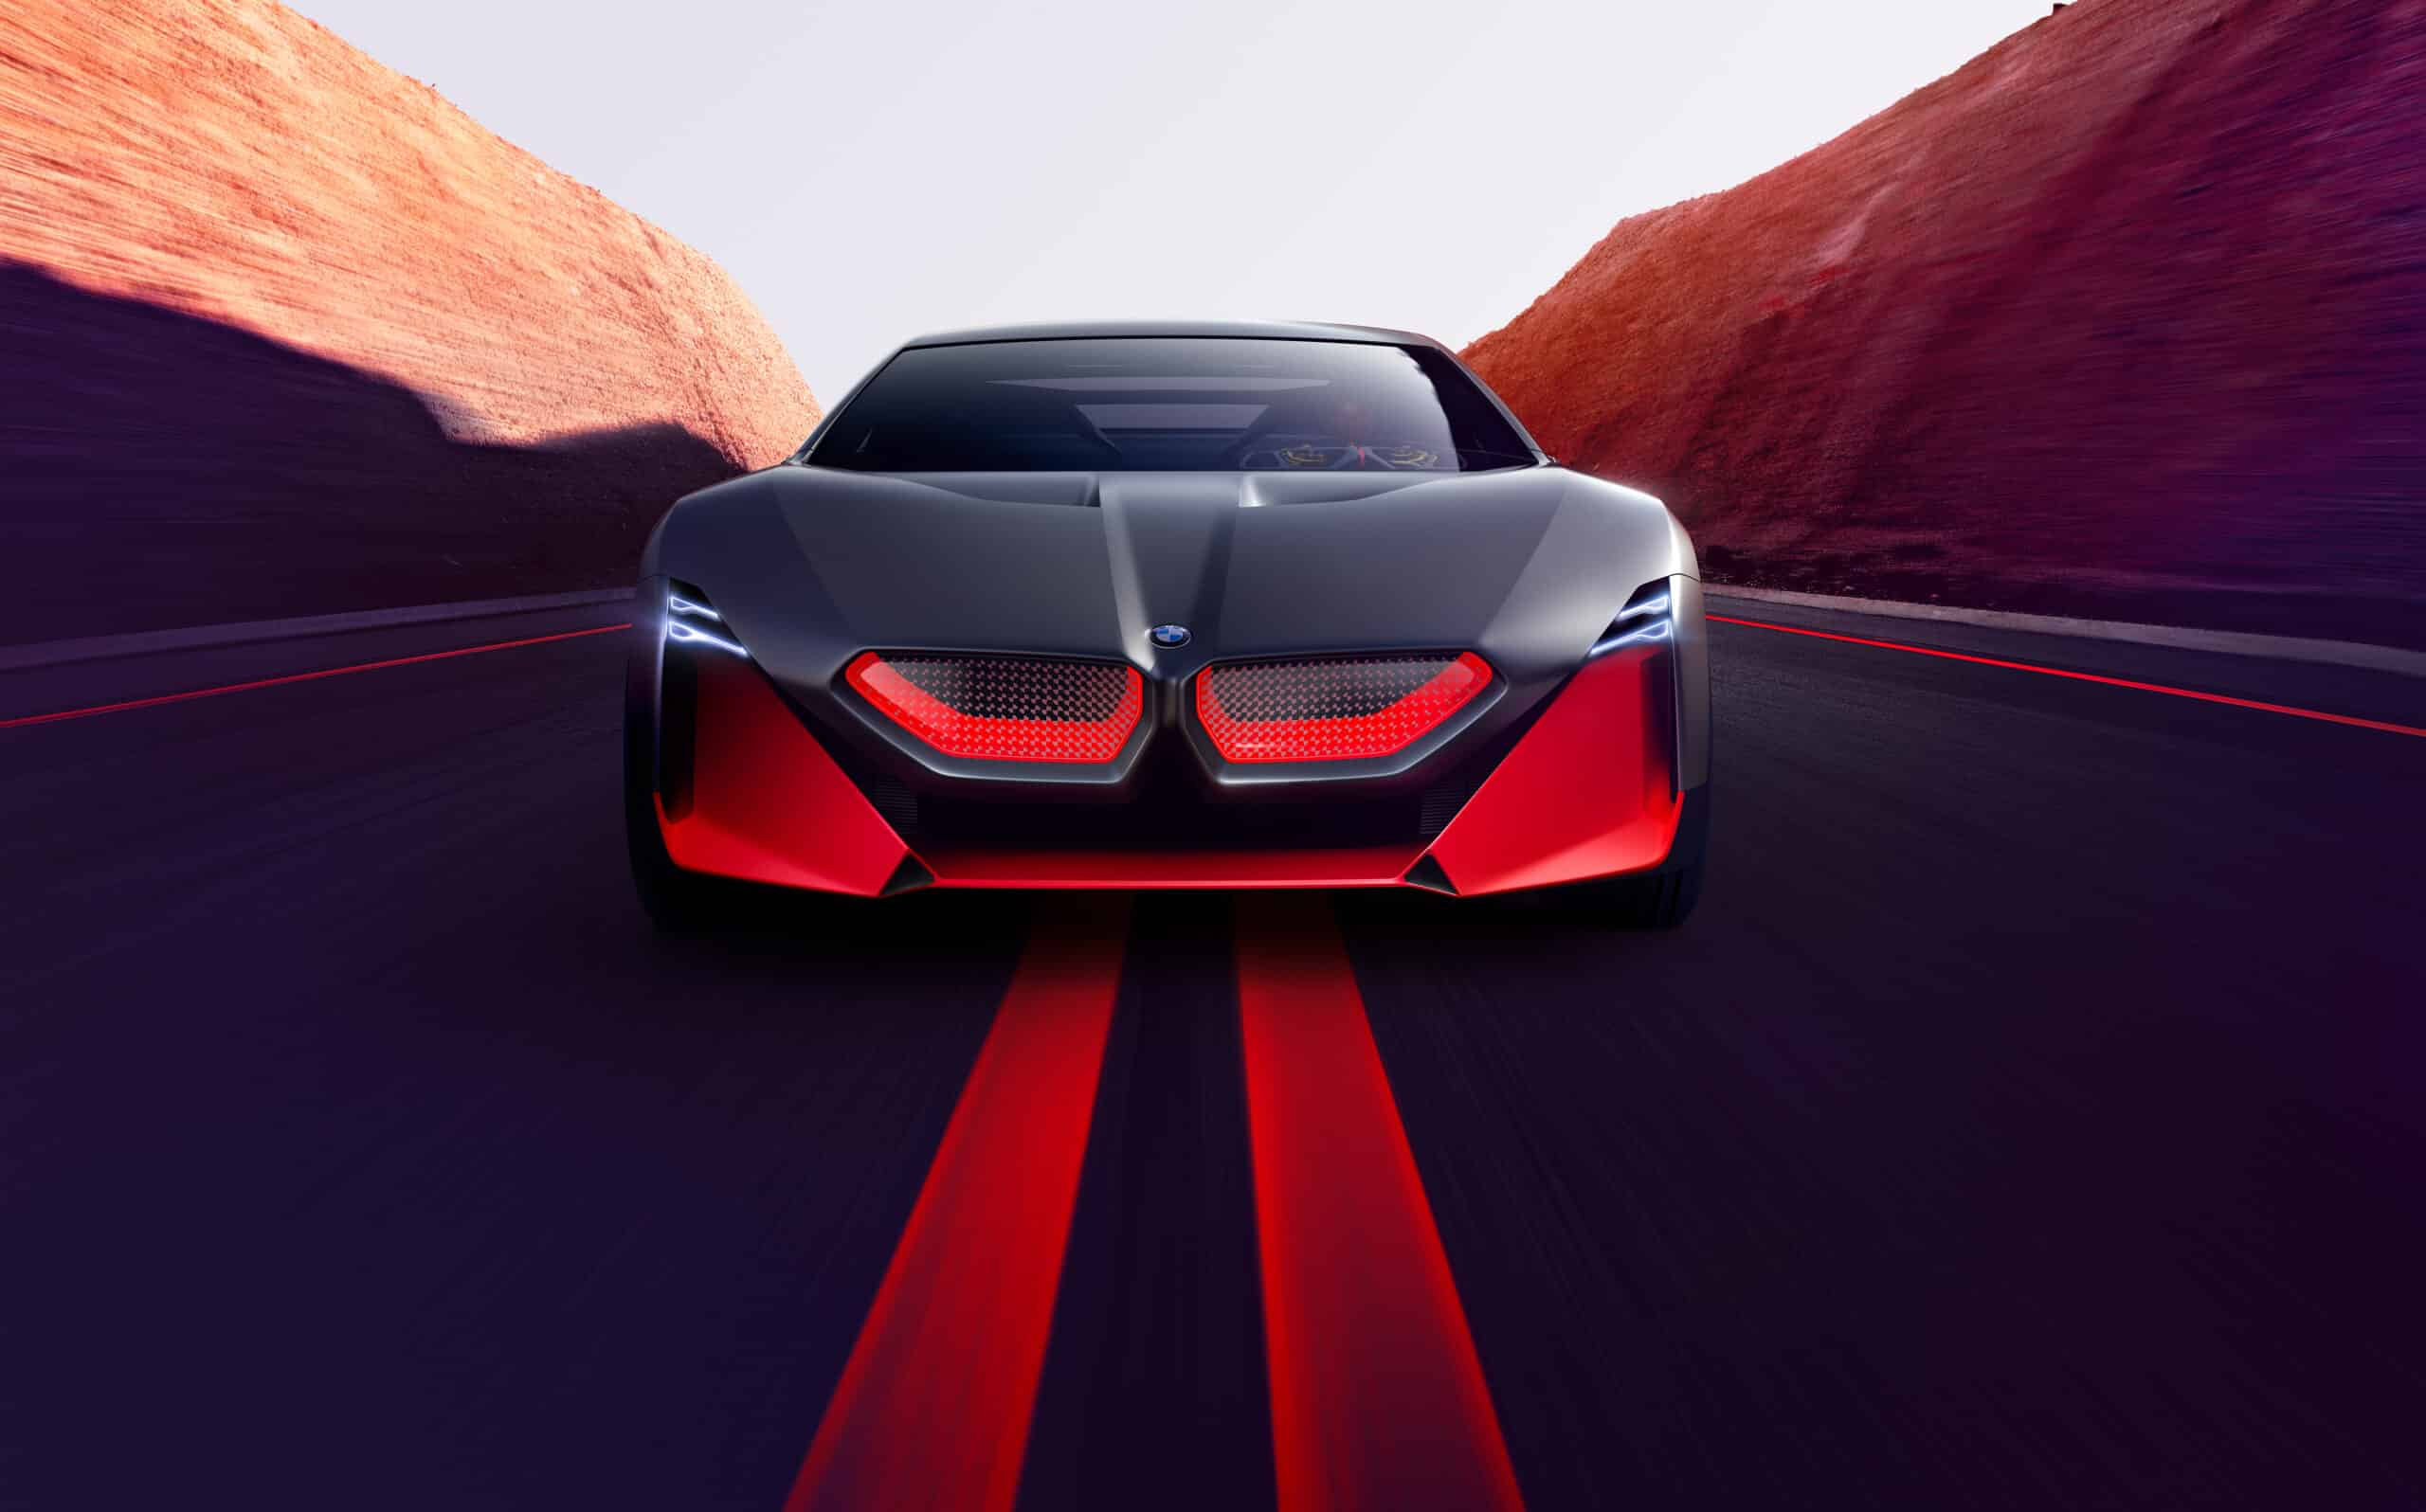 Bmw Vision M Next The Future Of Bmw Electrified Cars